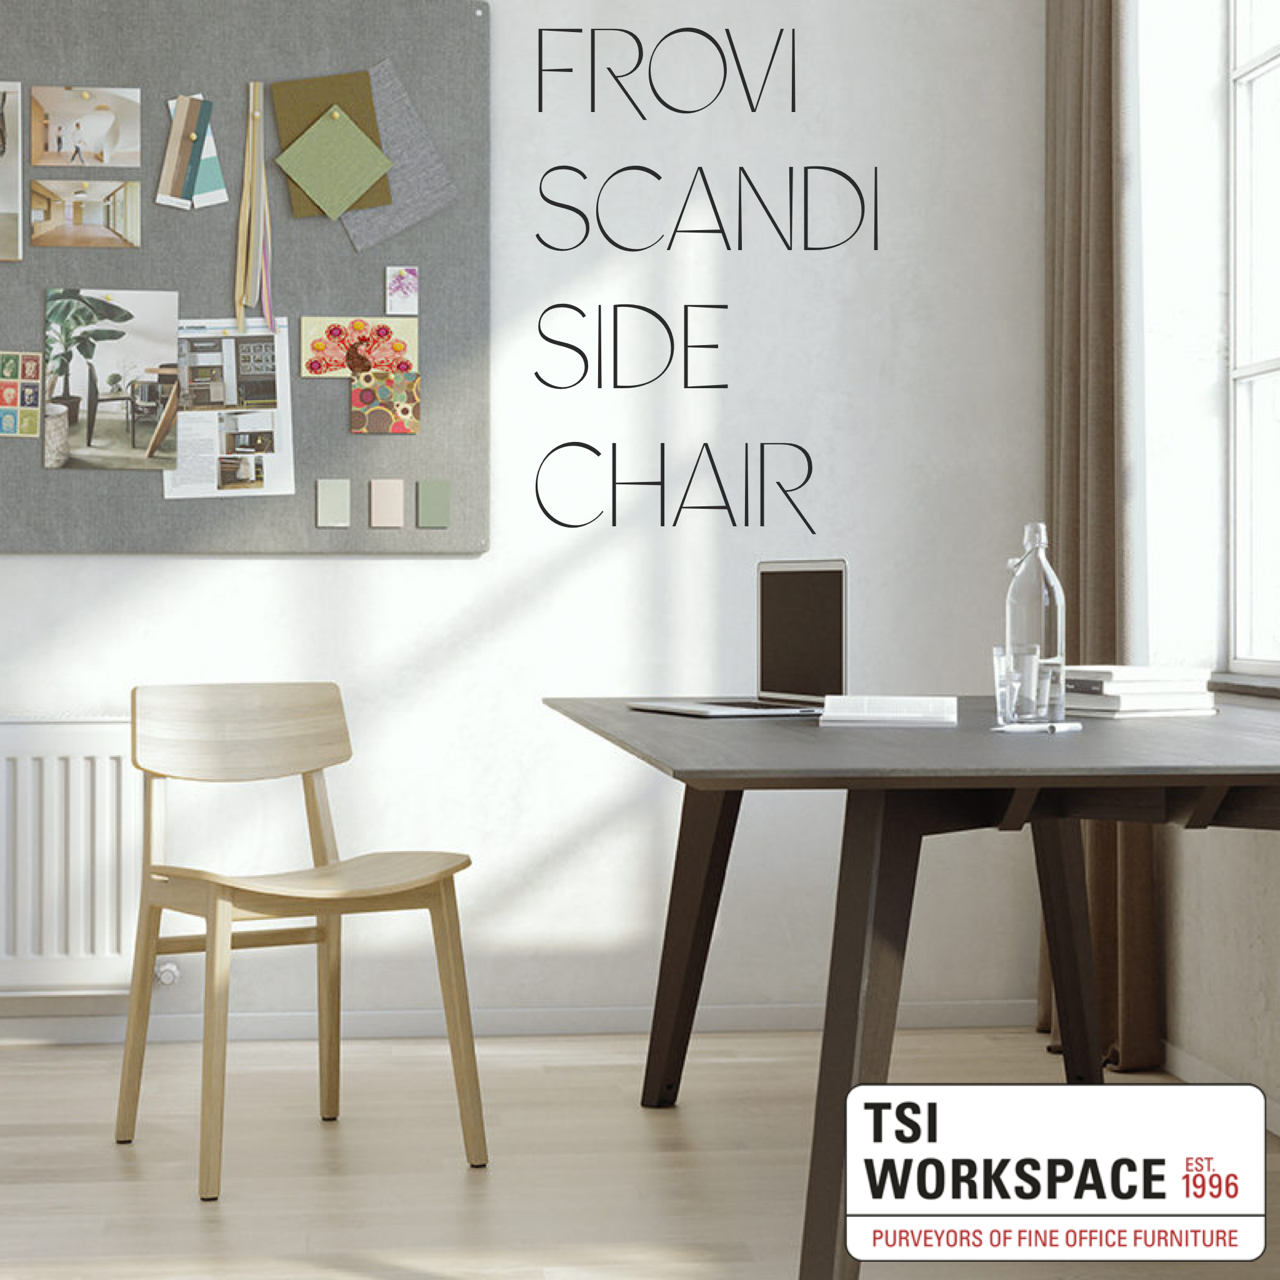 Frovi Scandi Side Chair from TSI Workspace https